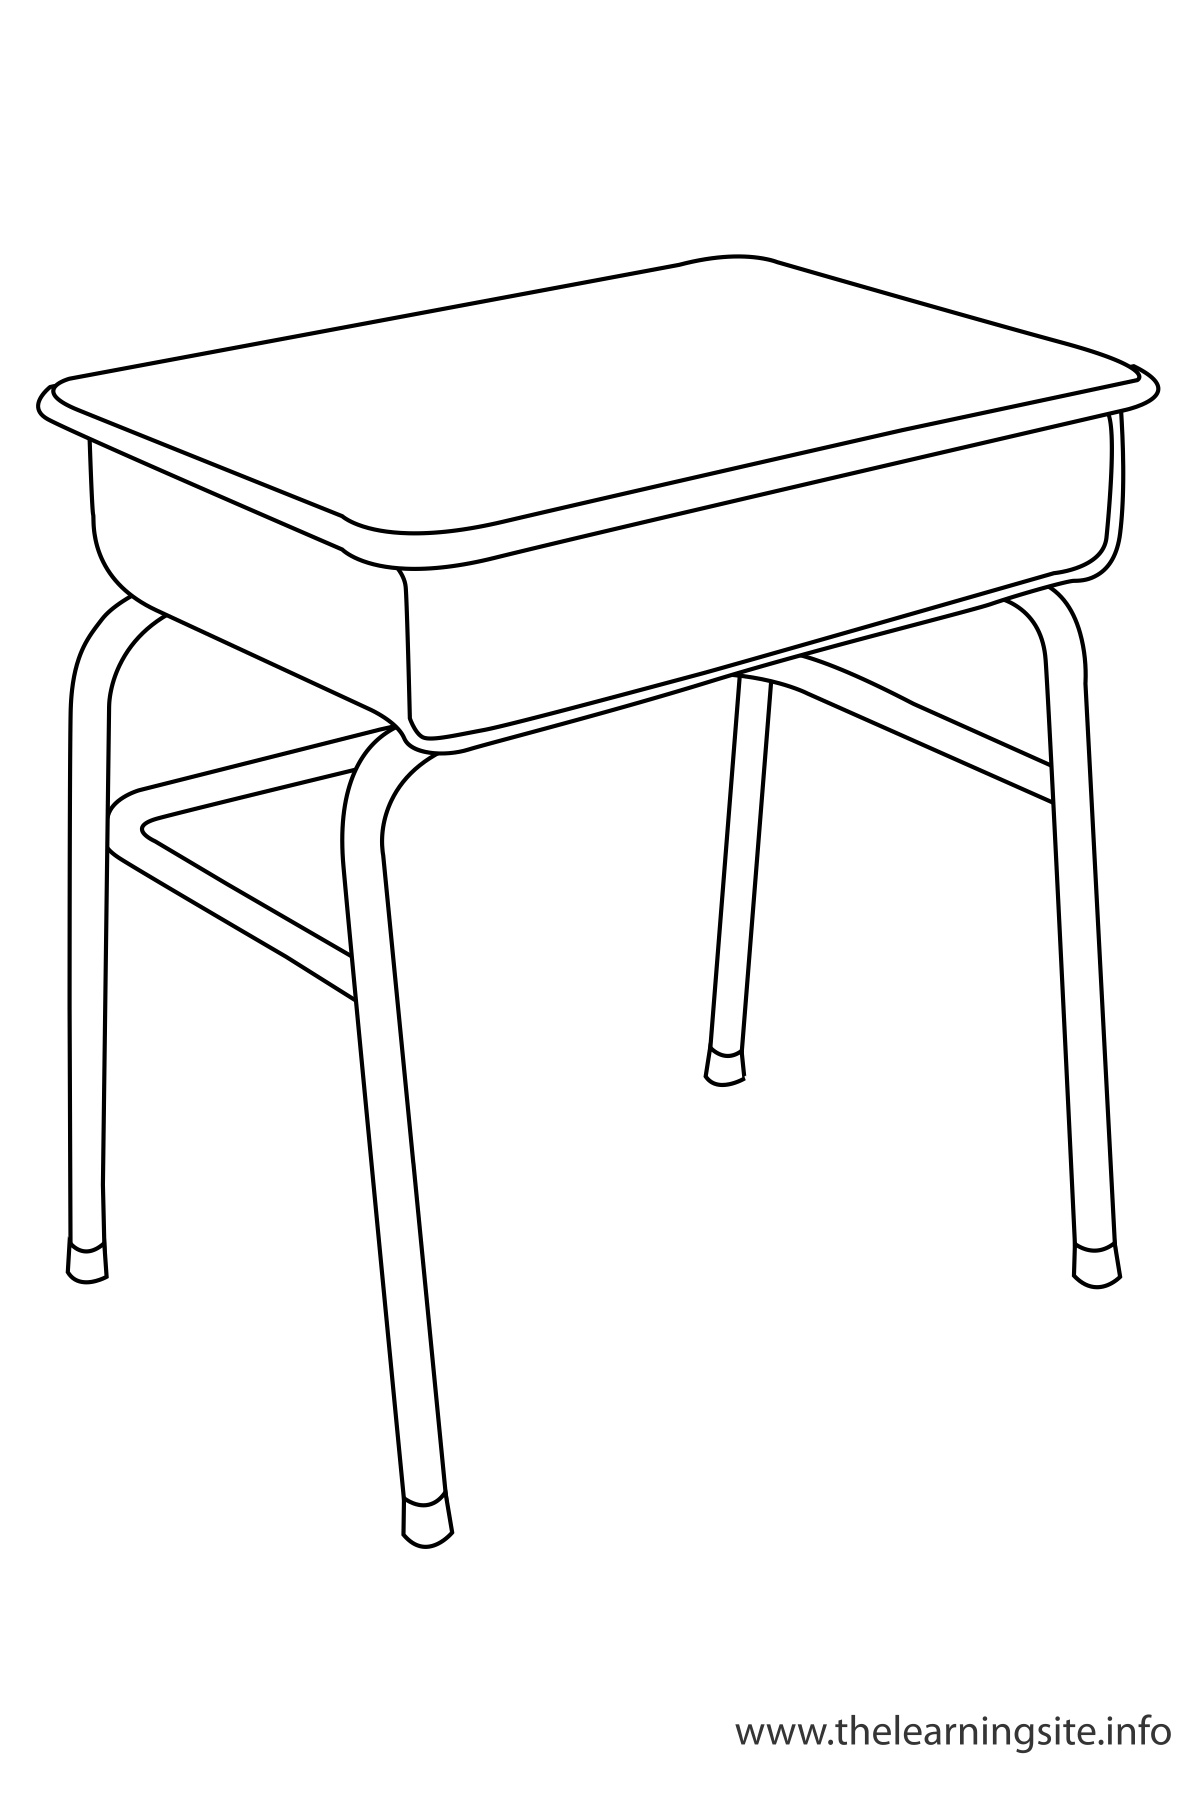 School Desk Coloring Page